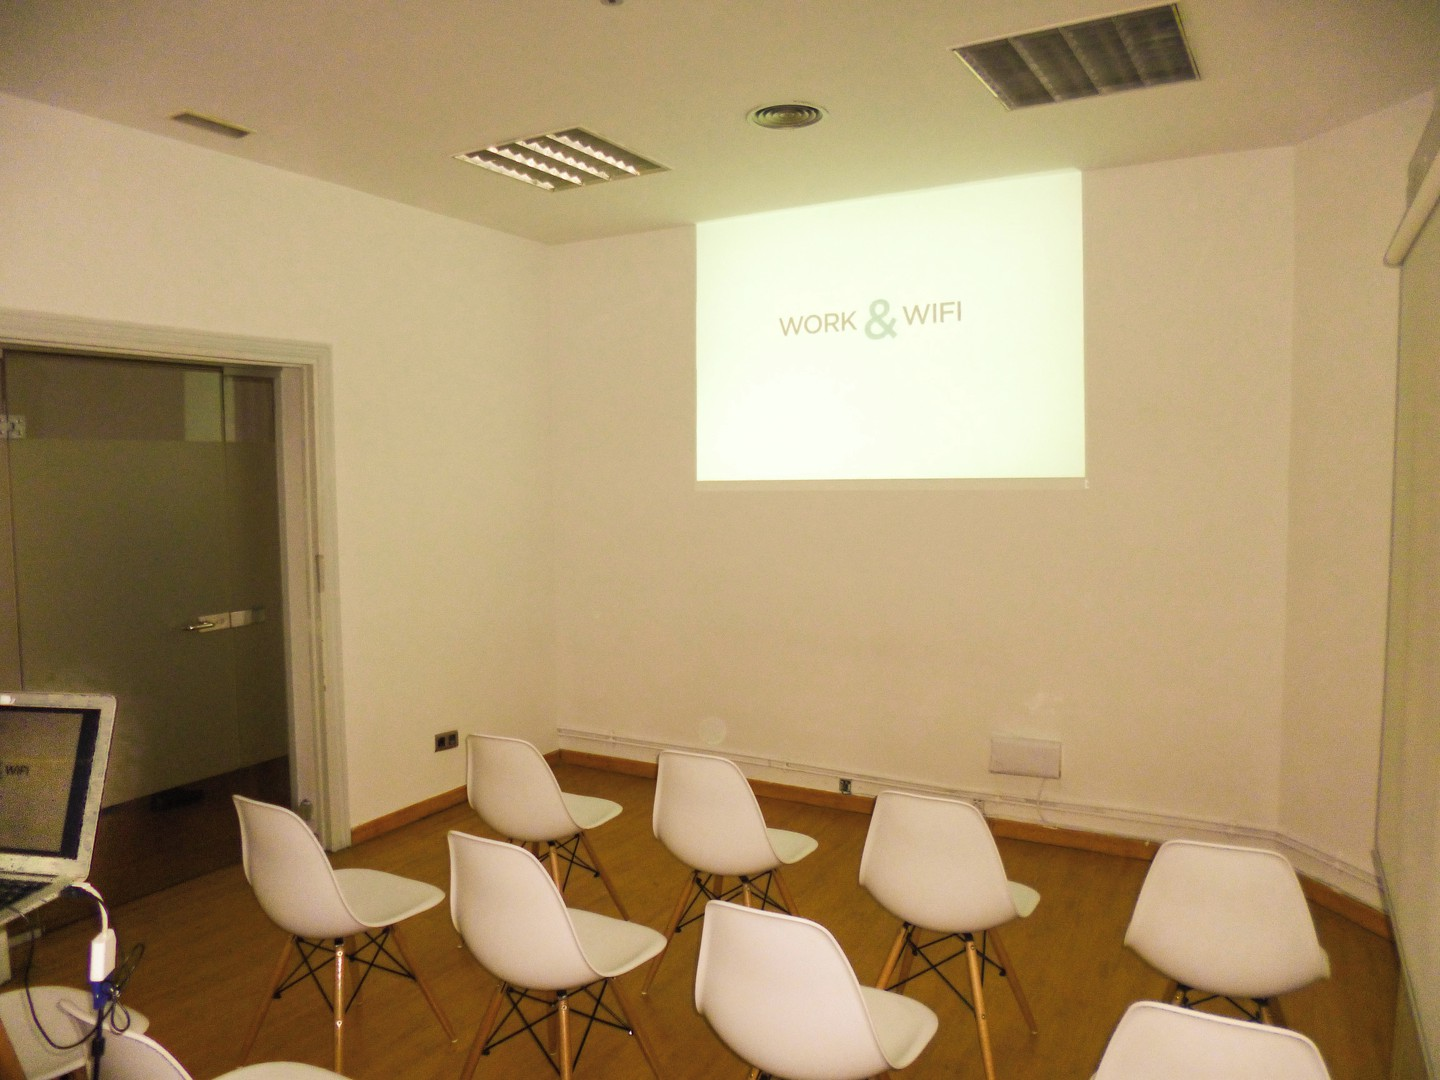 Madrid training rooms Salle de réunion WORK AND WIFI - ROOM1 image 4